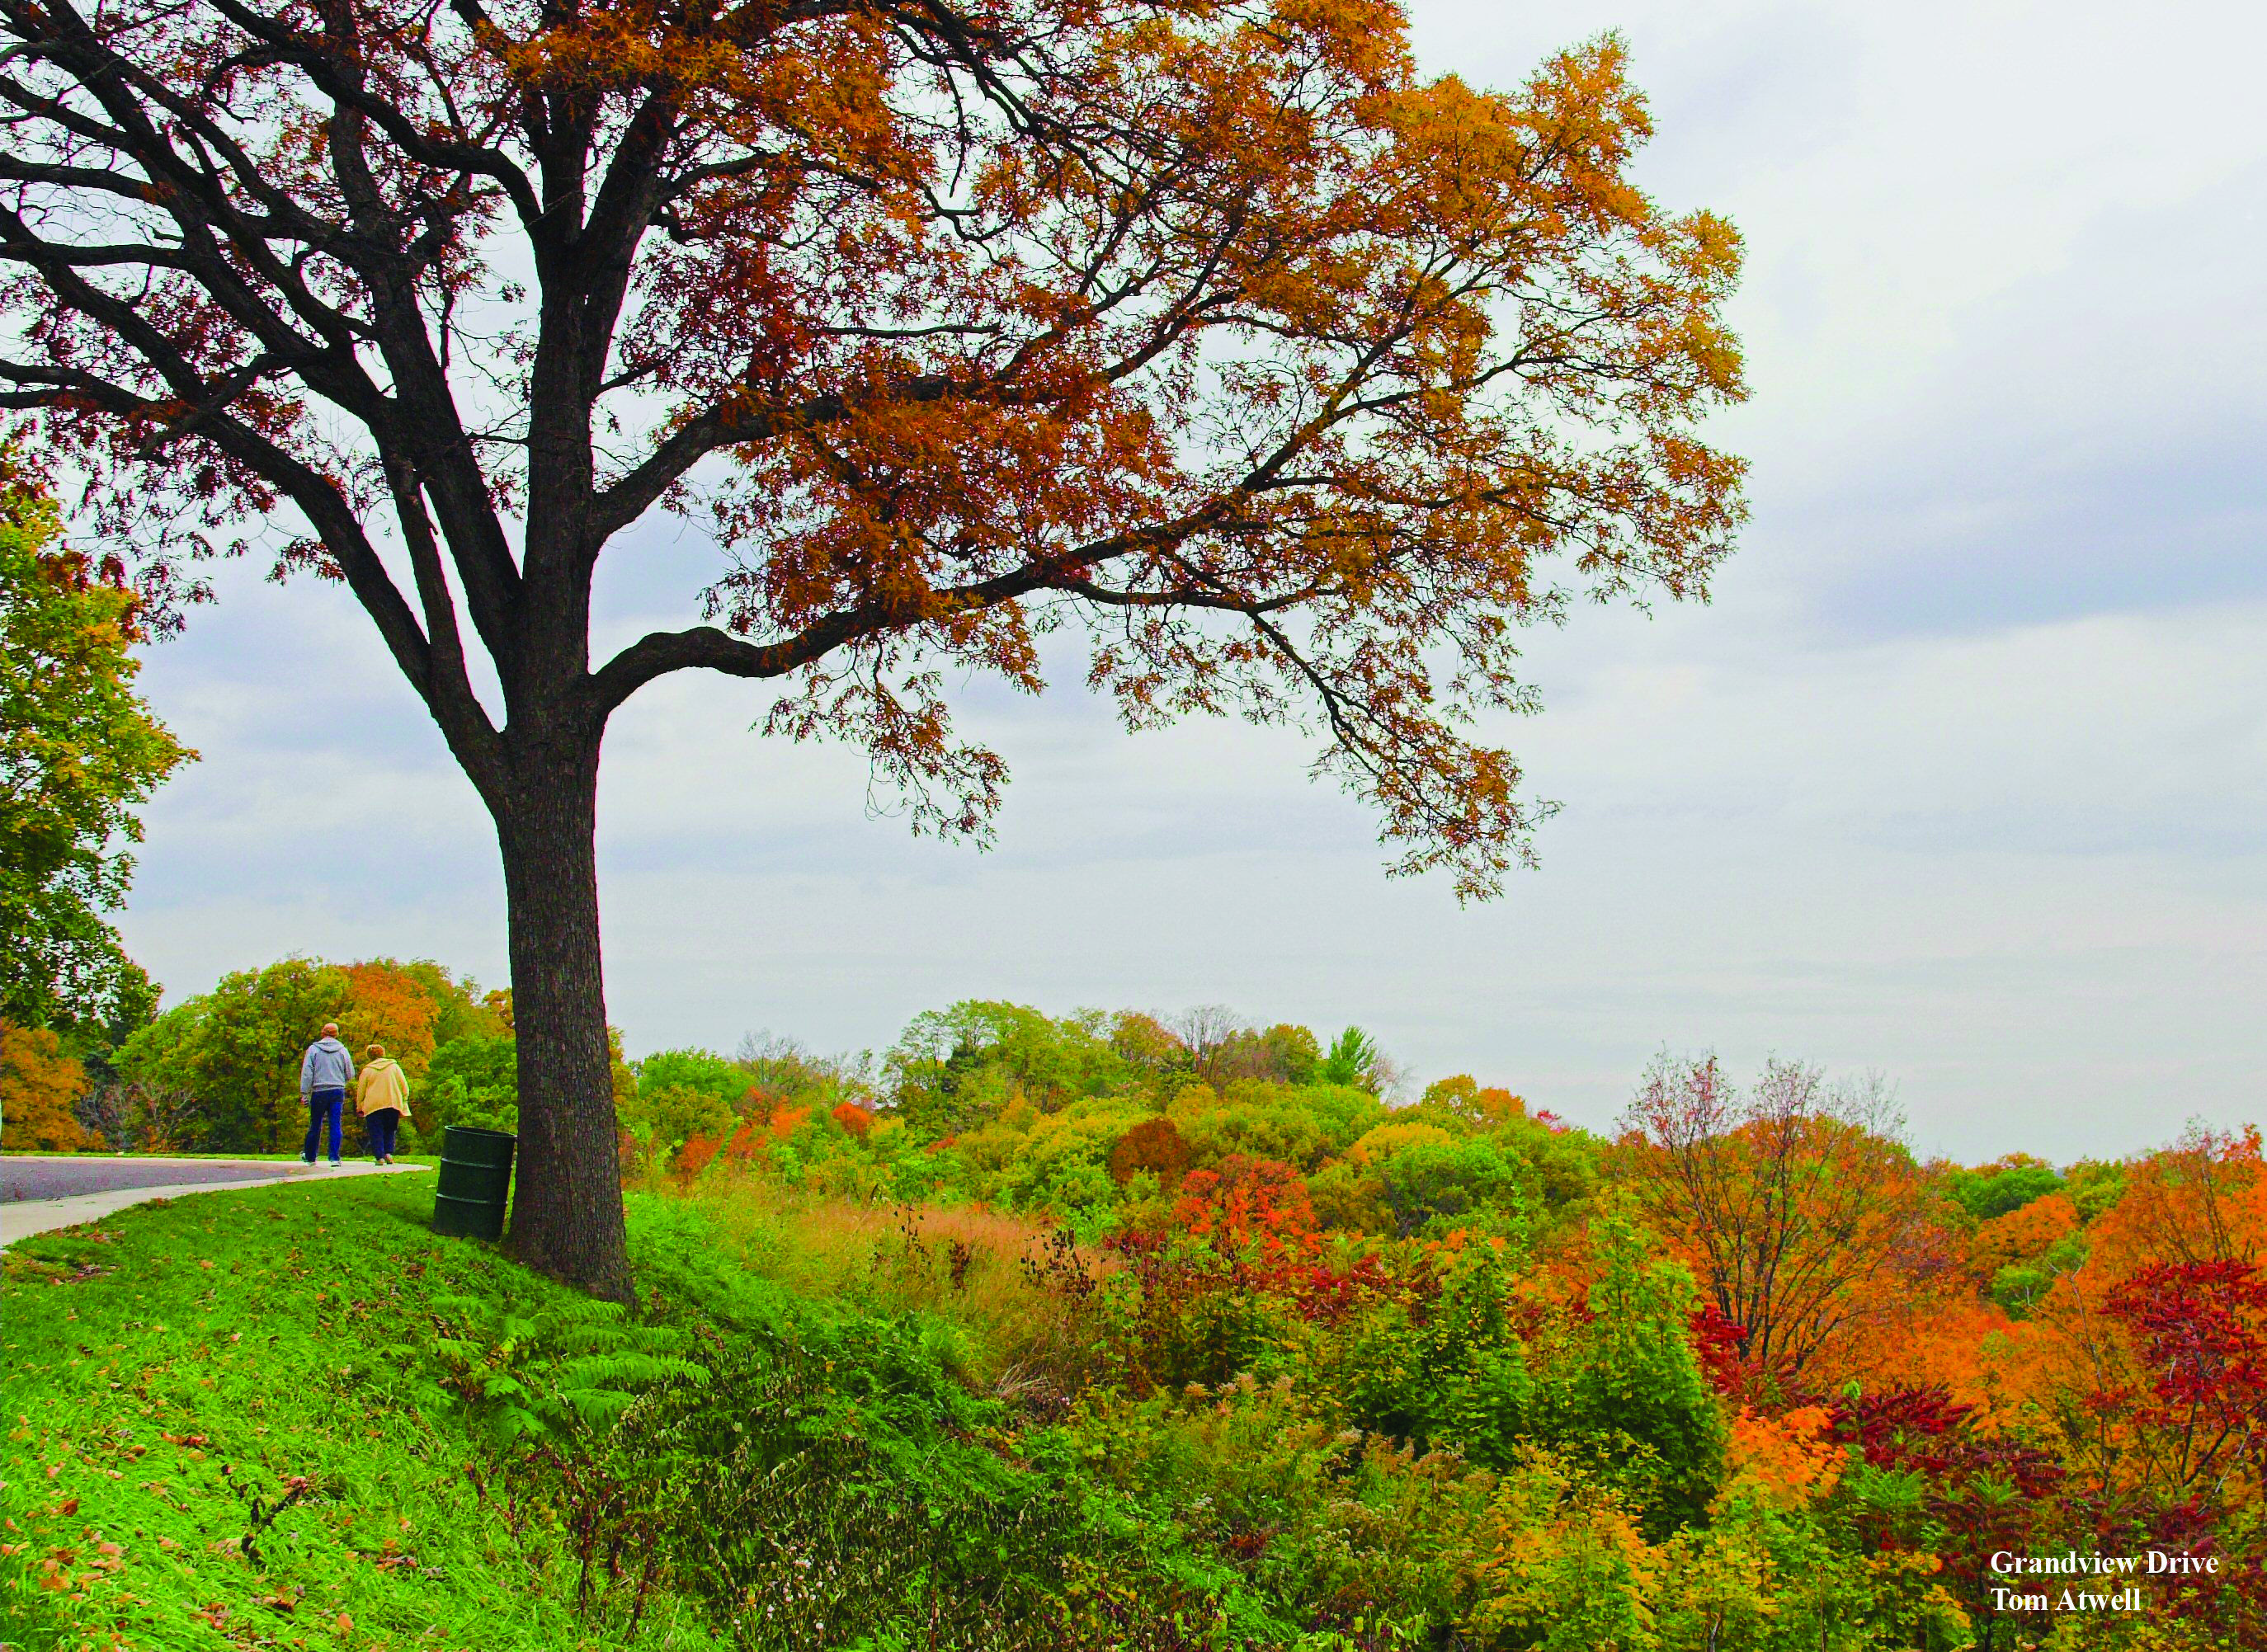 Grandview Drive Peoria Il This Time Of Year I Really Miss Home Peoria Illinois Peoria Hometown